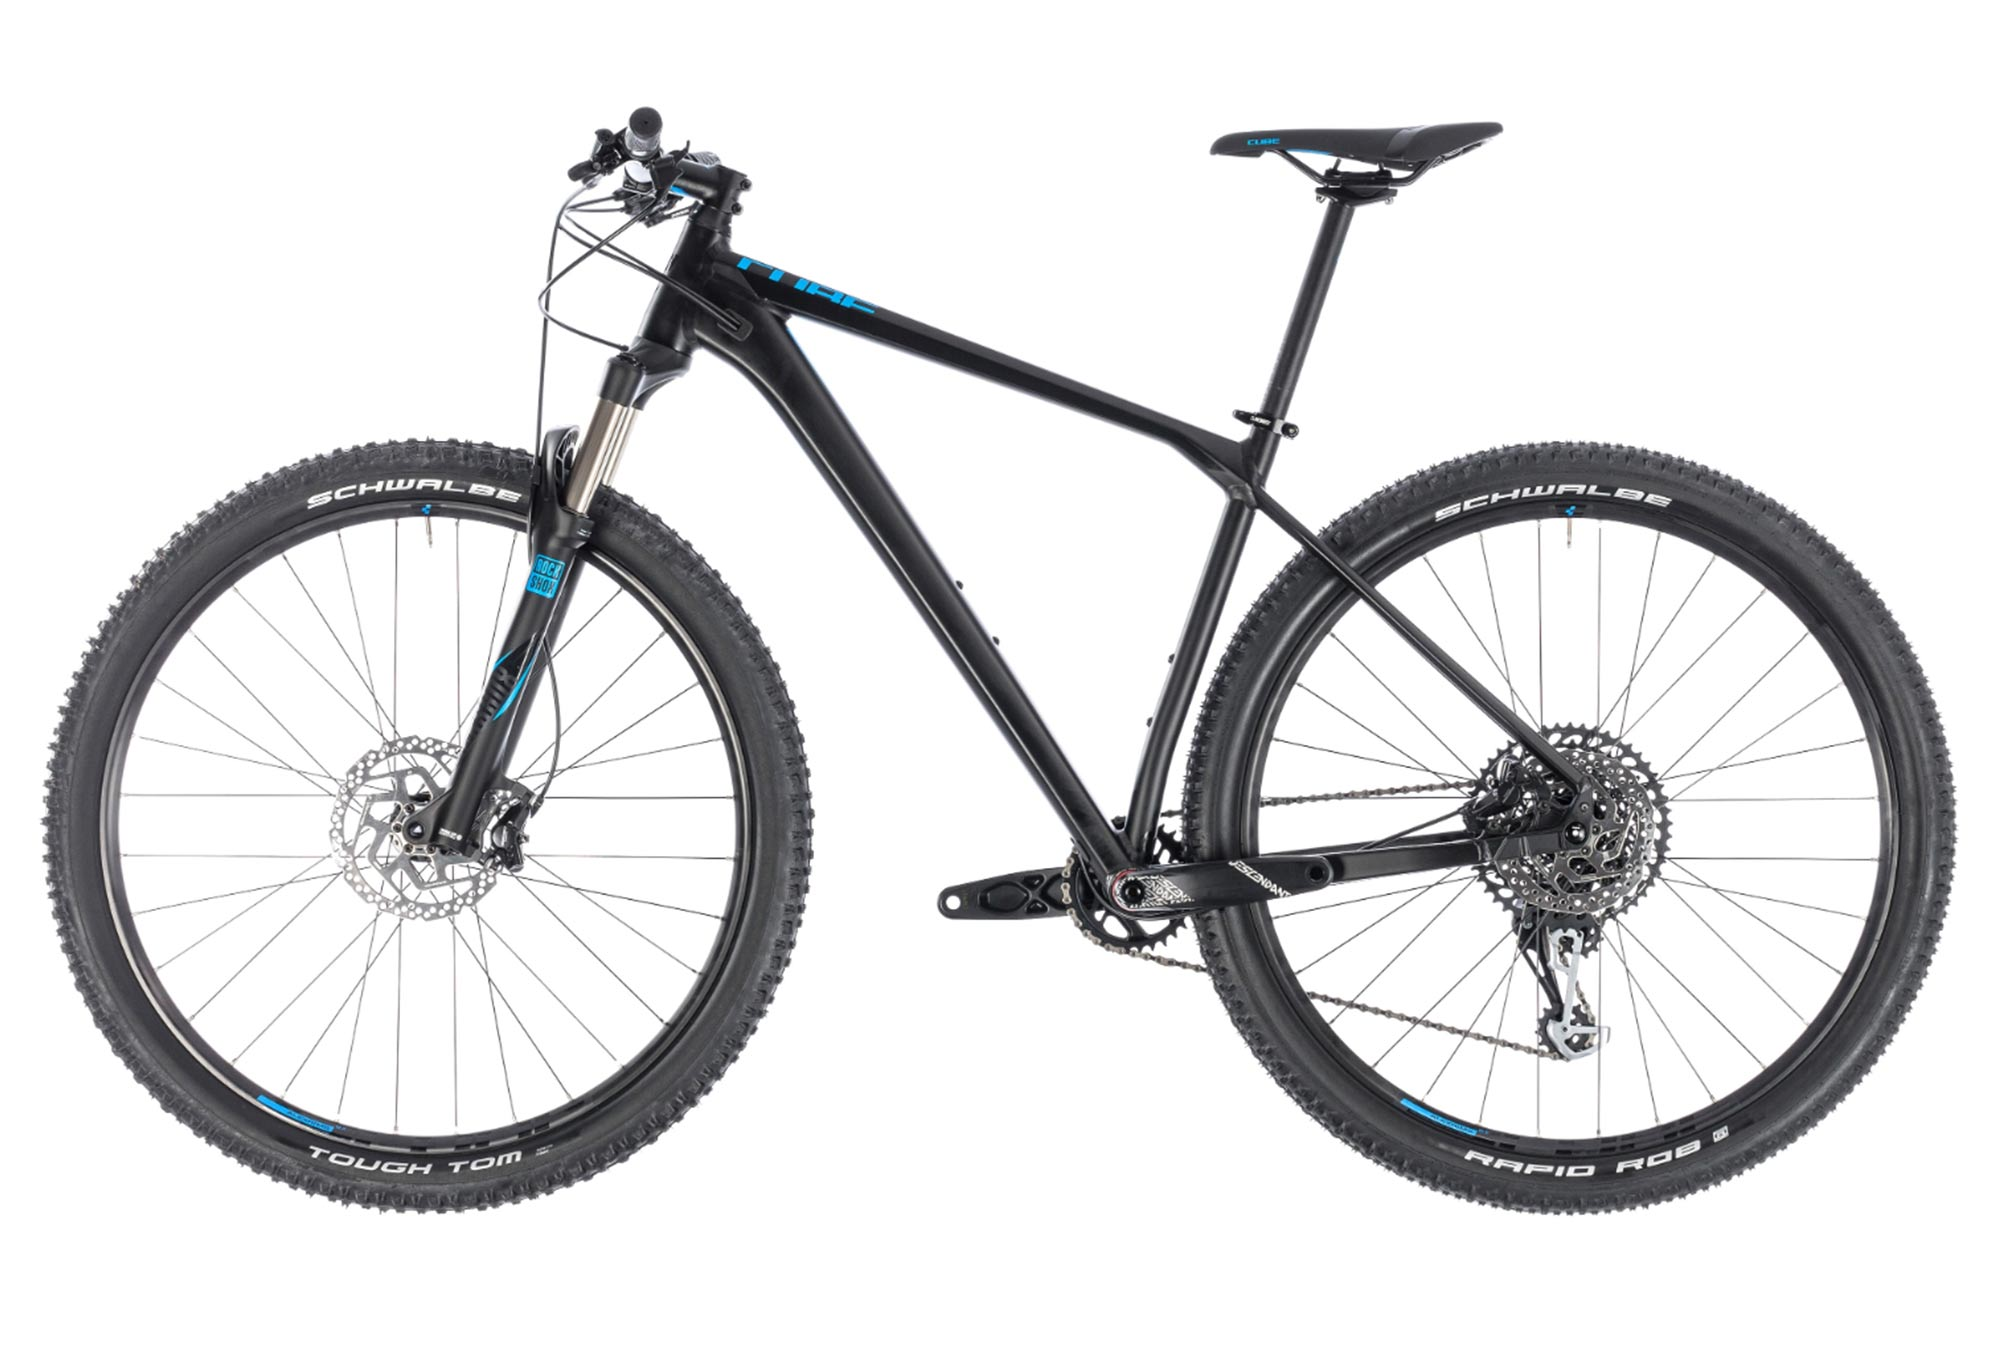 cube 2018 reaction race hardtail mtb 29 sram gx eagle 12s. Black Bedroom Furniture Sets. Home Design Ideas